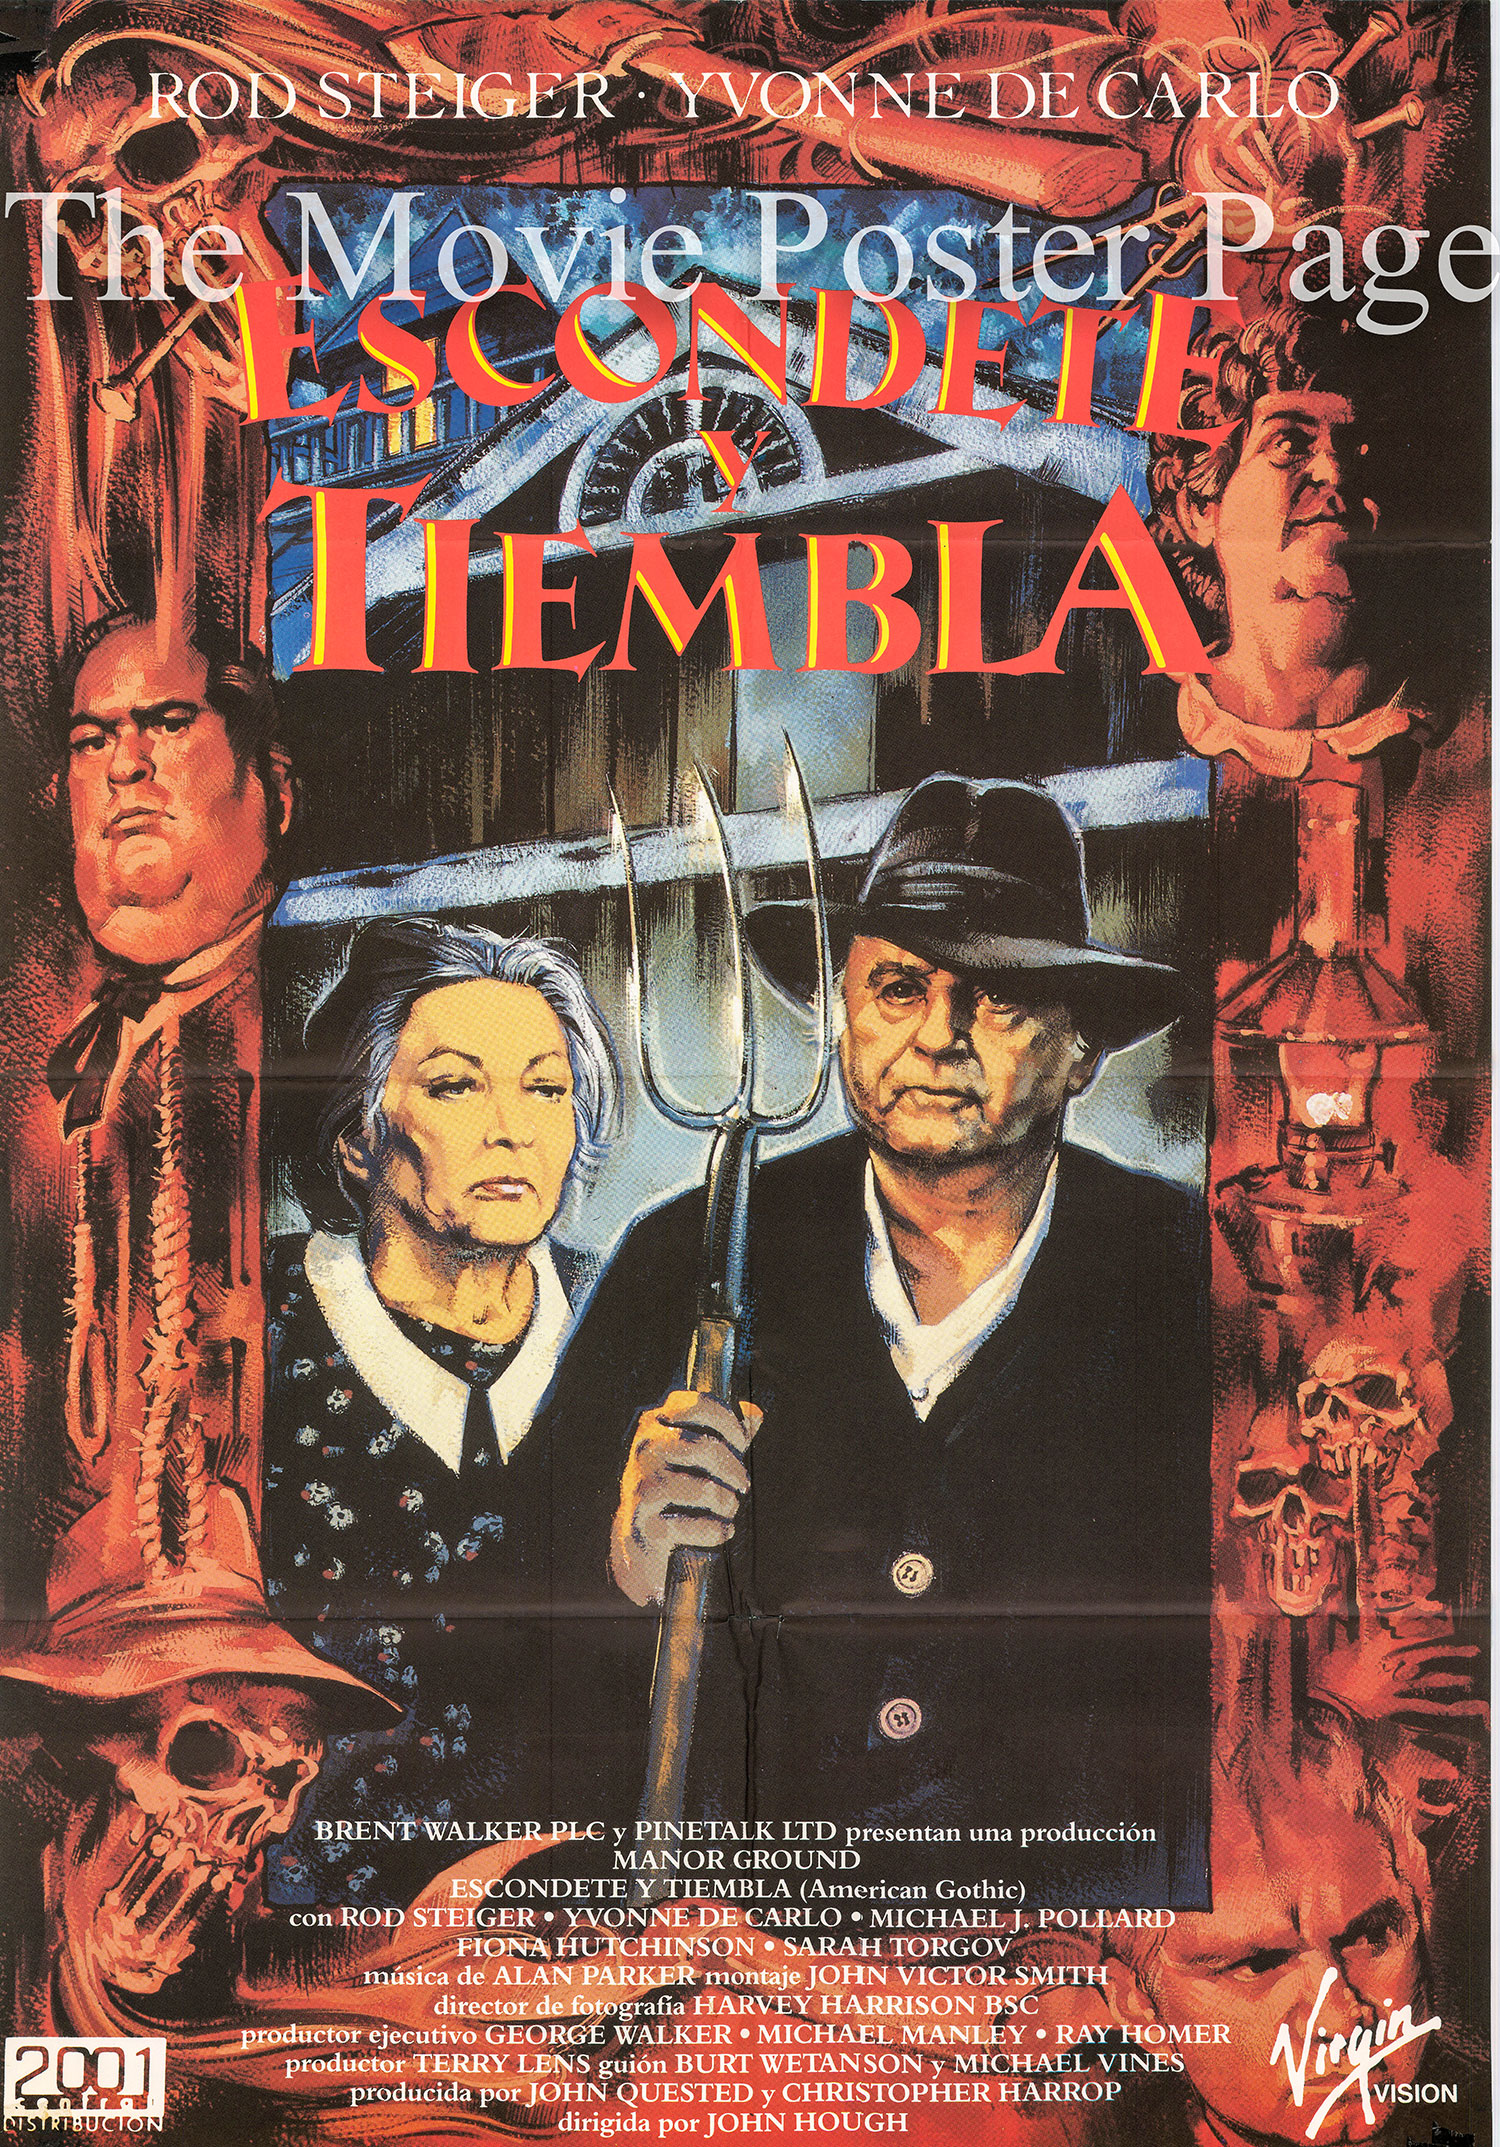 Pictured is a Spanish one-sheet for the 1988 John Hough film America Gothic starring Rod Steiger.